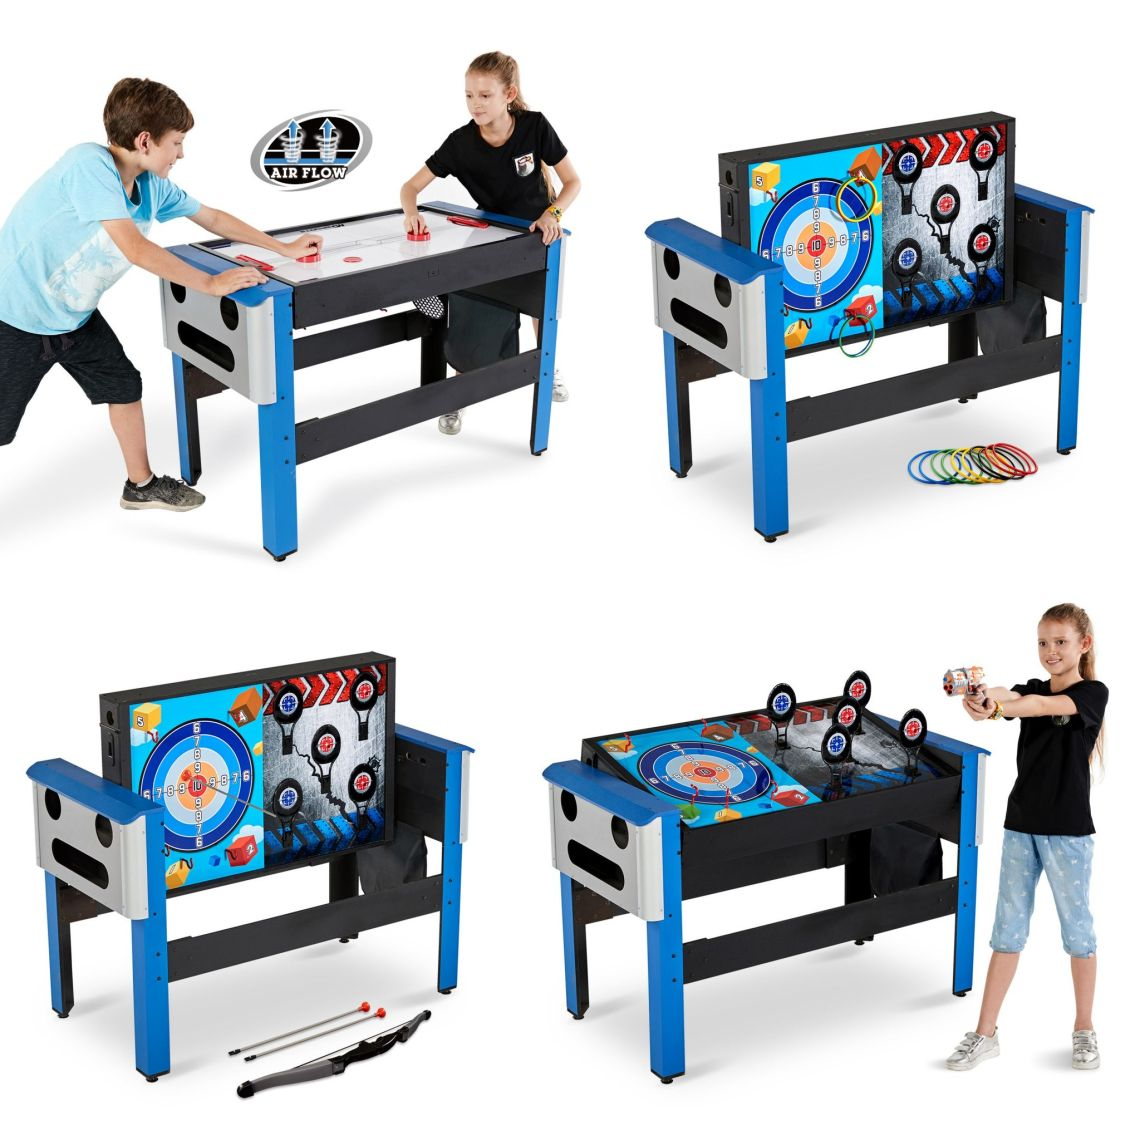 MD Sports 48 Inch 4-IN-1 Swivel Combo Game Table, Air Powered Hockey, Archery, Target Shooting and Ring Toss - Walmart.com